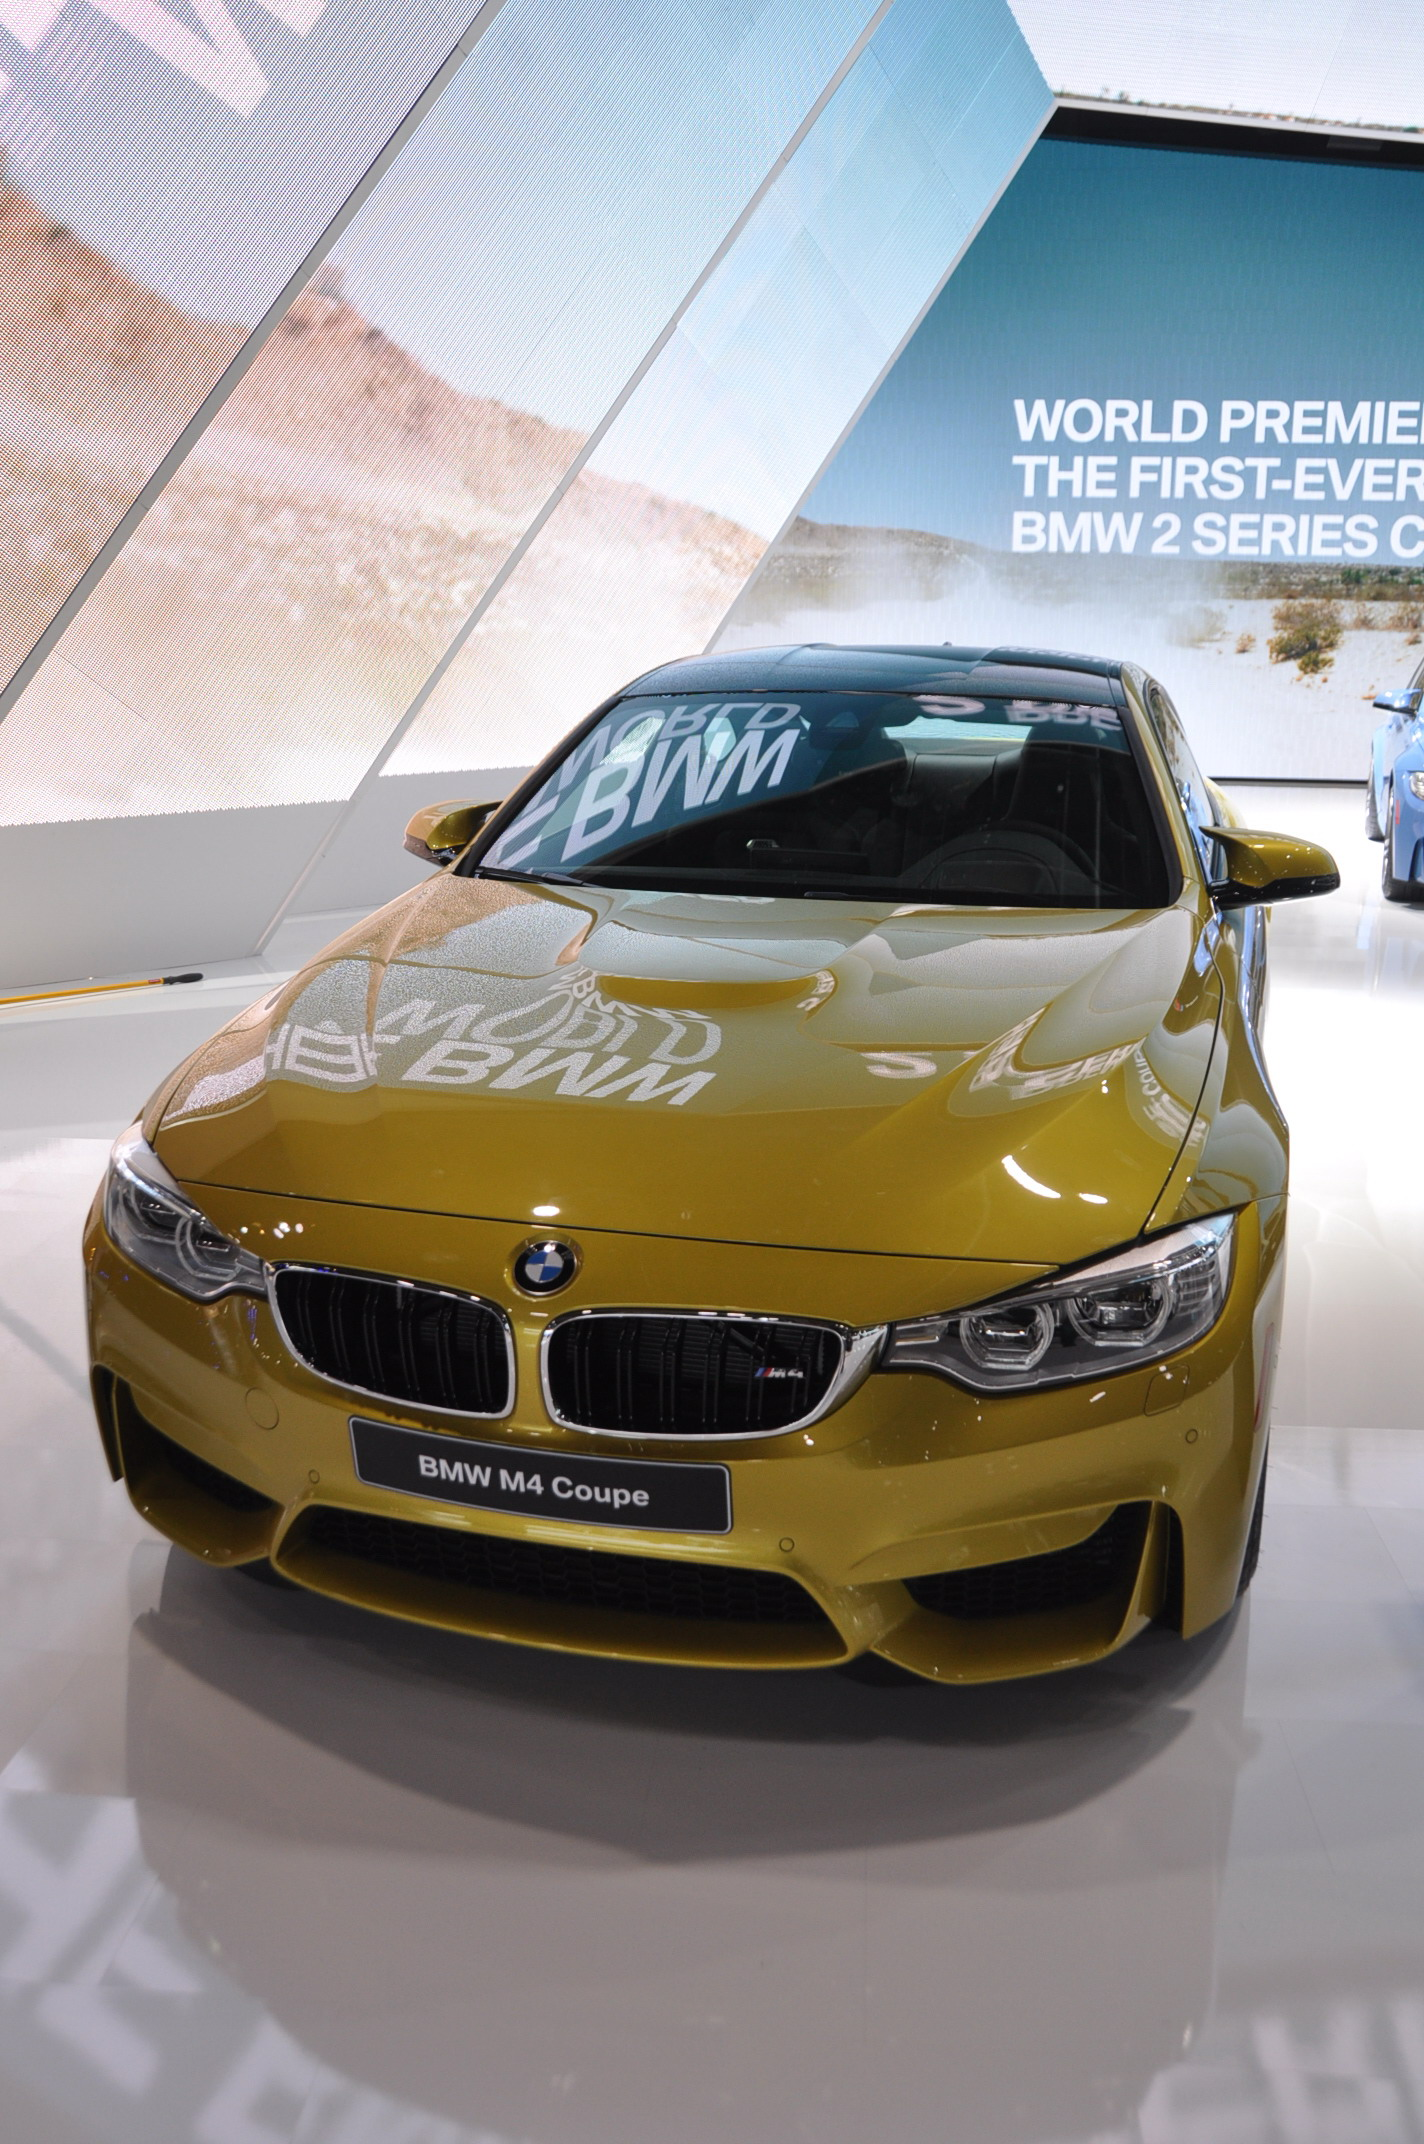 2015 bmw m4 coupe gallery 538602 top speed. Black Bedroom Furniture Sets. Home Design Ideas